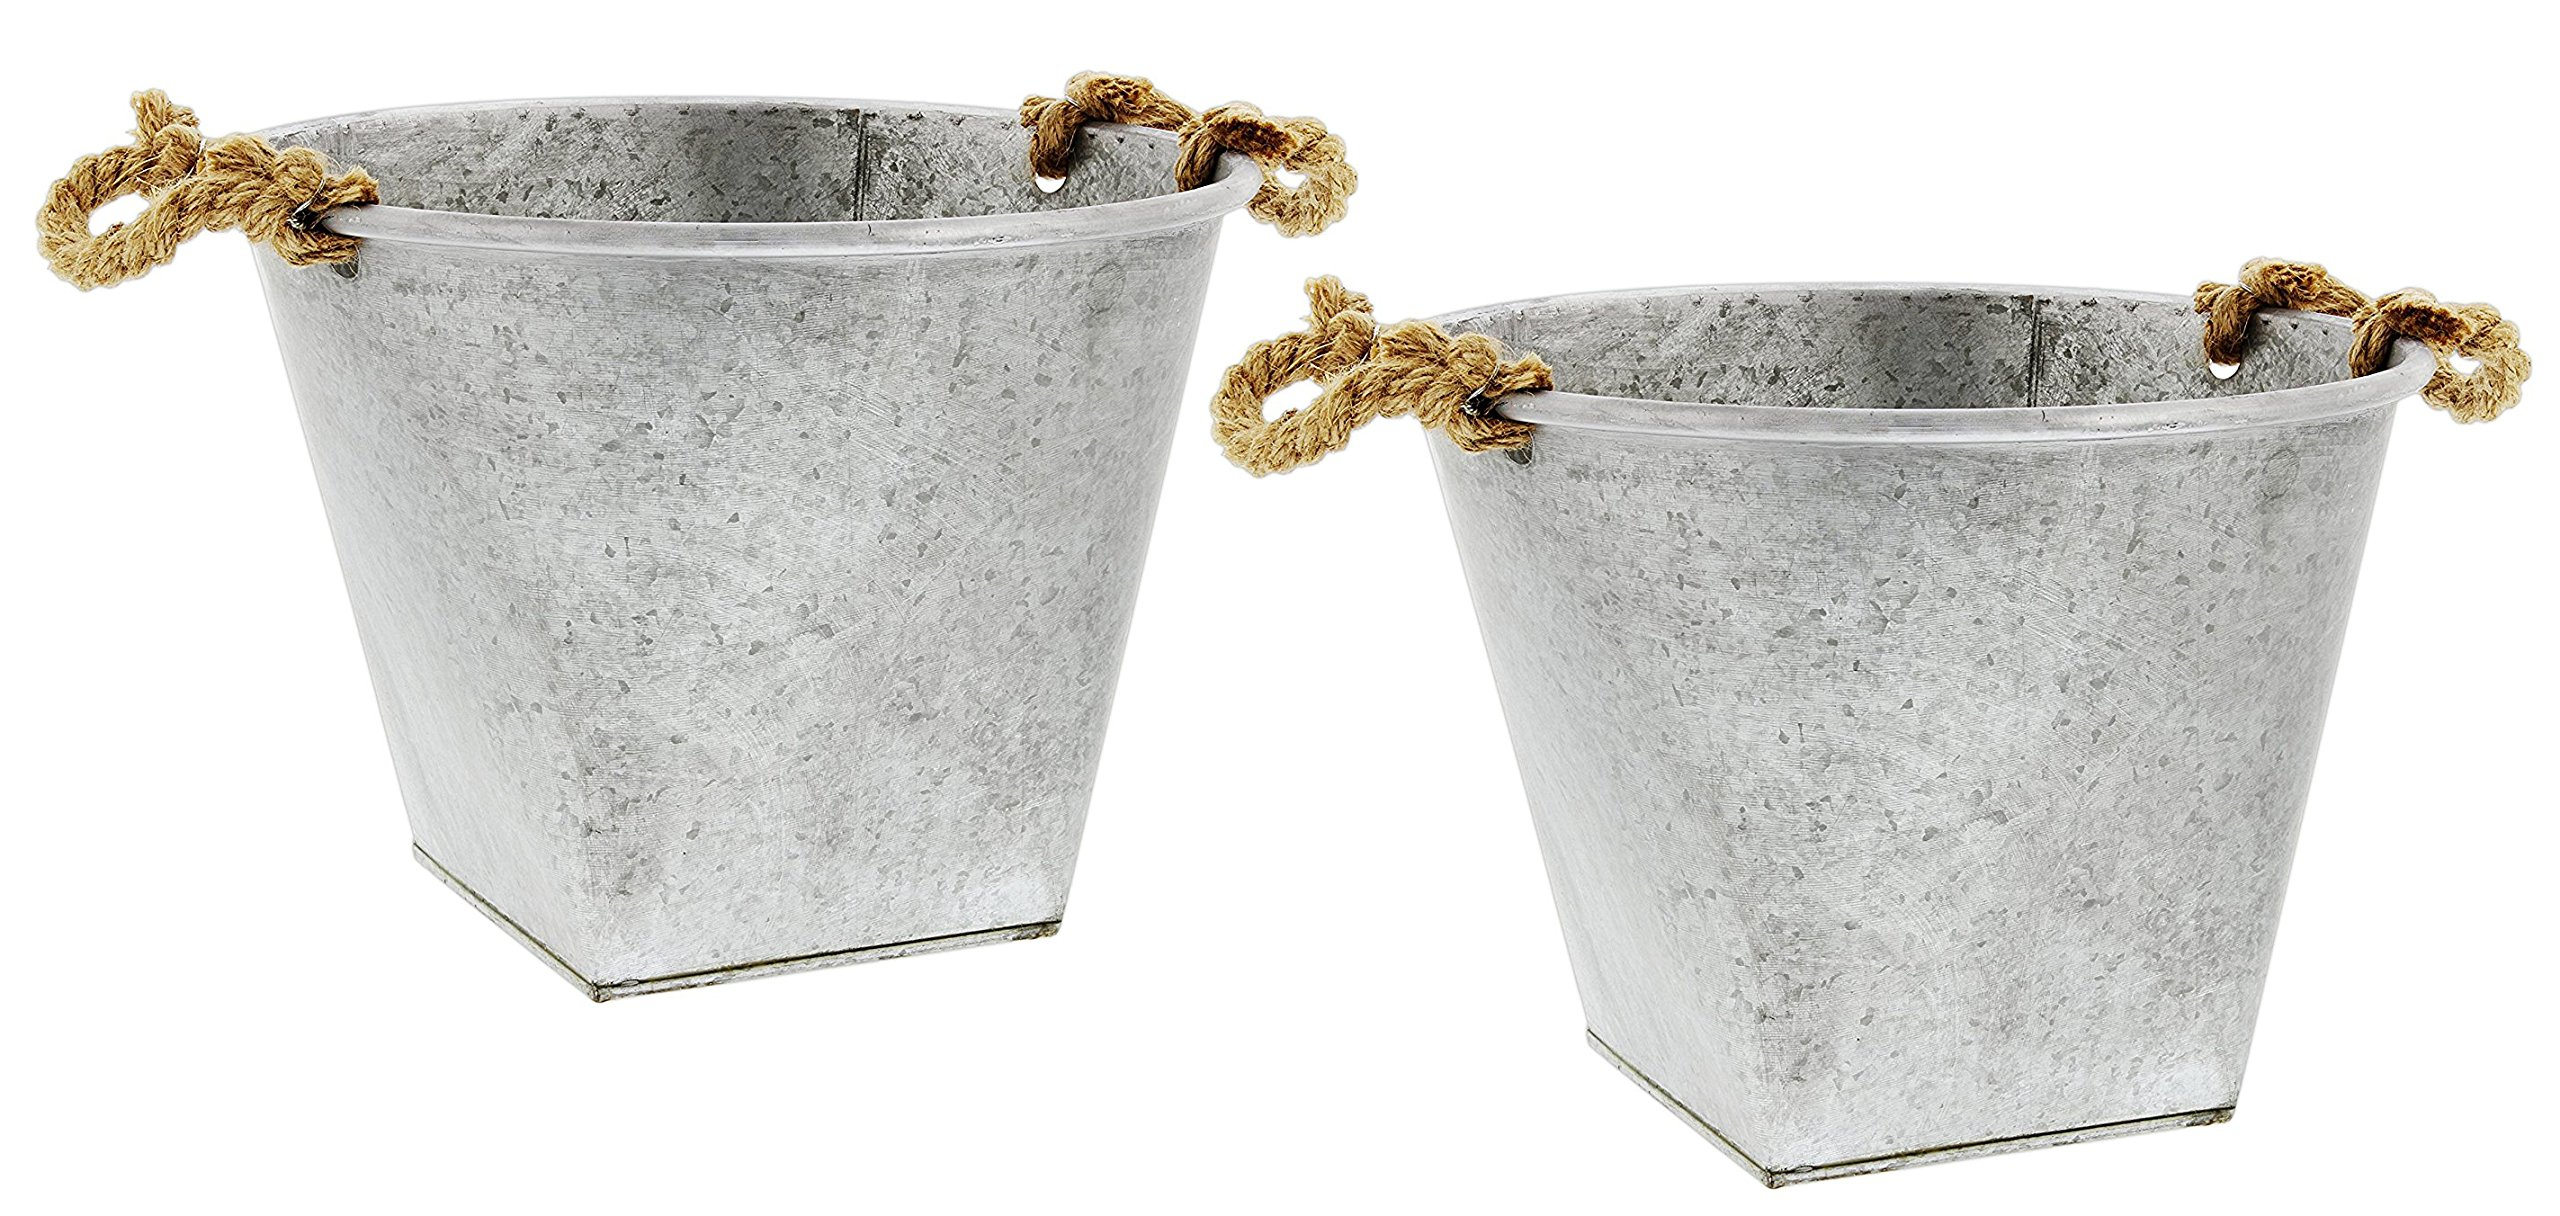 Lucky Winner Set of 2 Galvanized Metal Buckets with Rope Handles 13.5''x11''